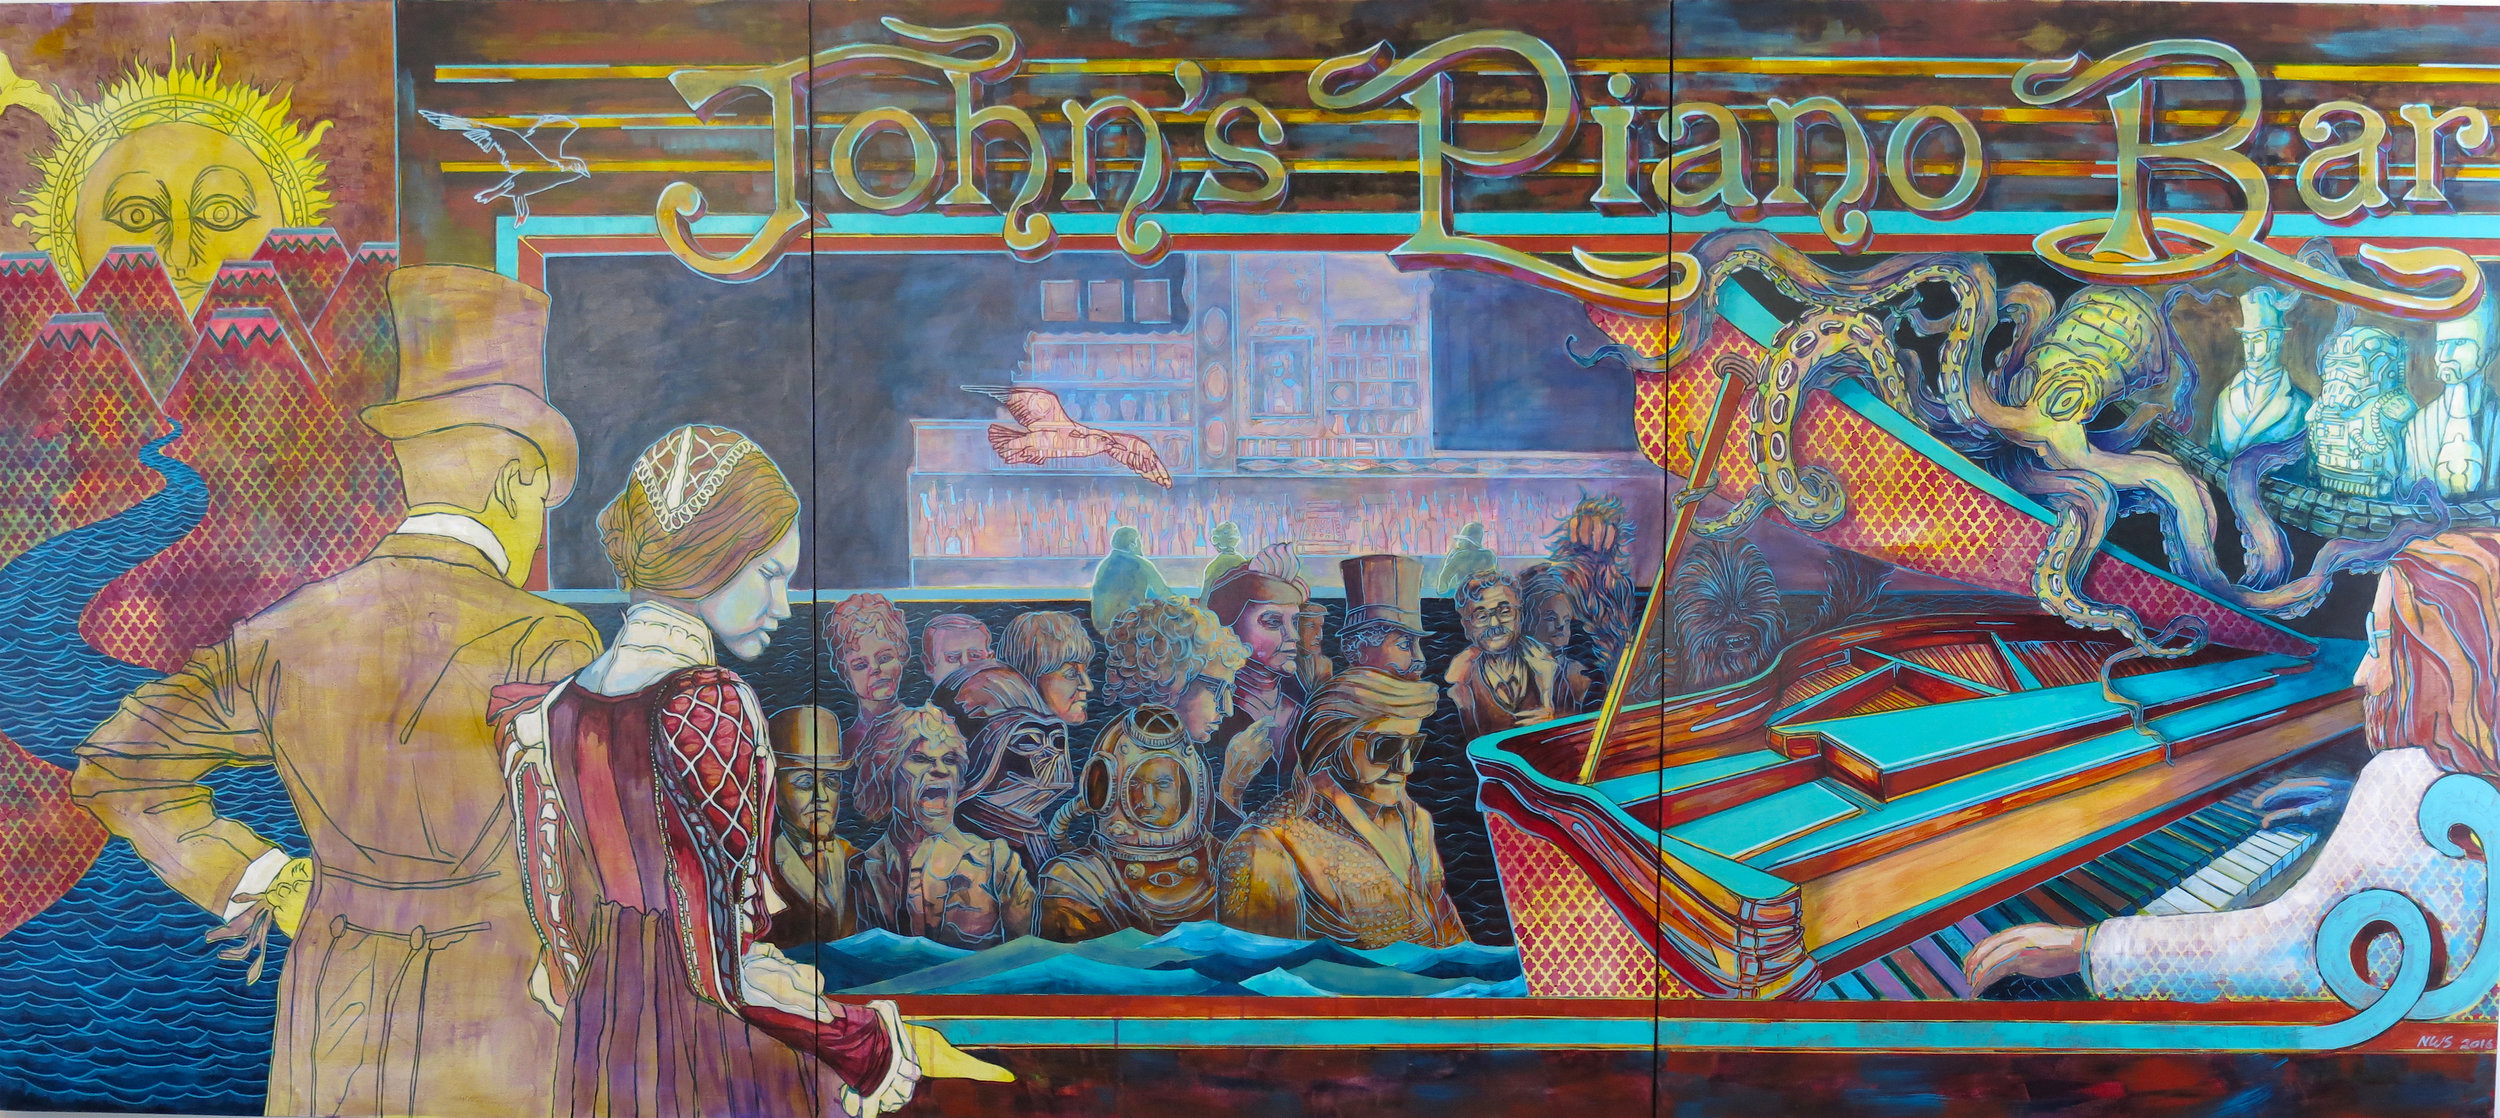 John's Piano Bar  (three panels) | acrylic on panel | 4' x 10' (total) | private commission